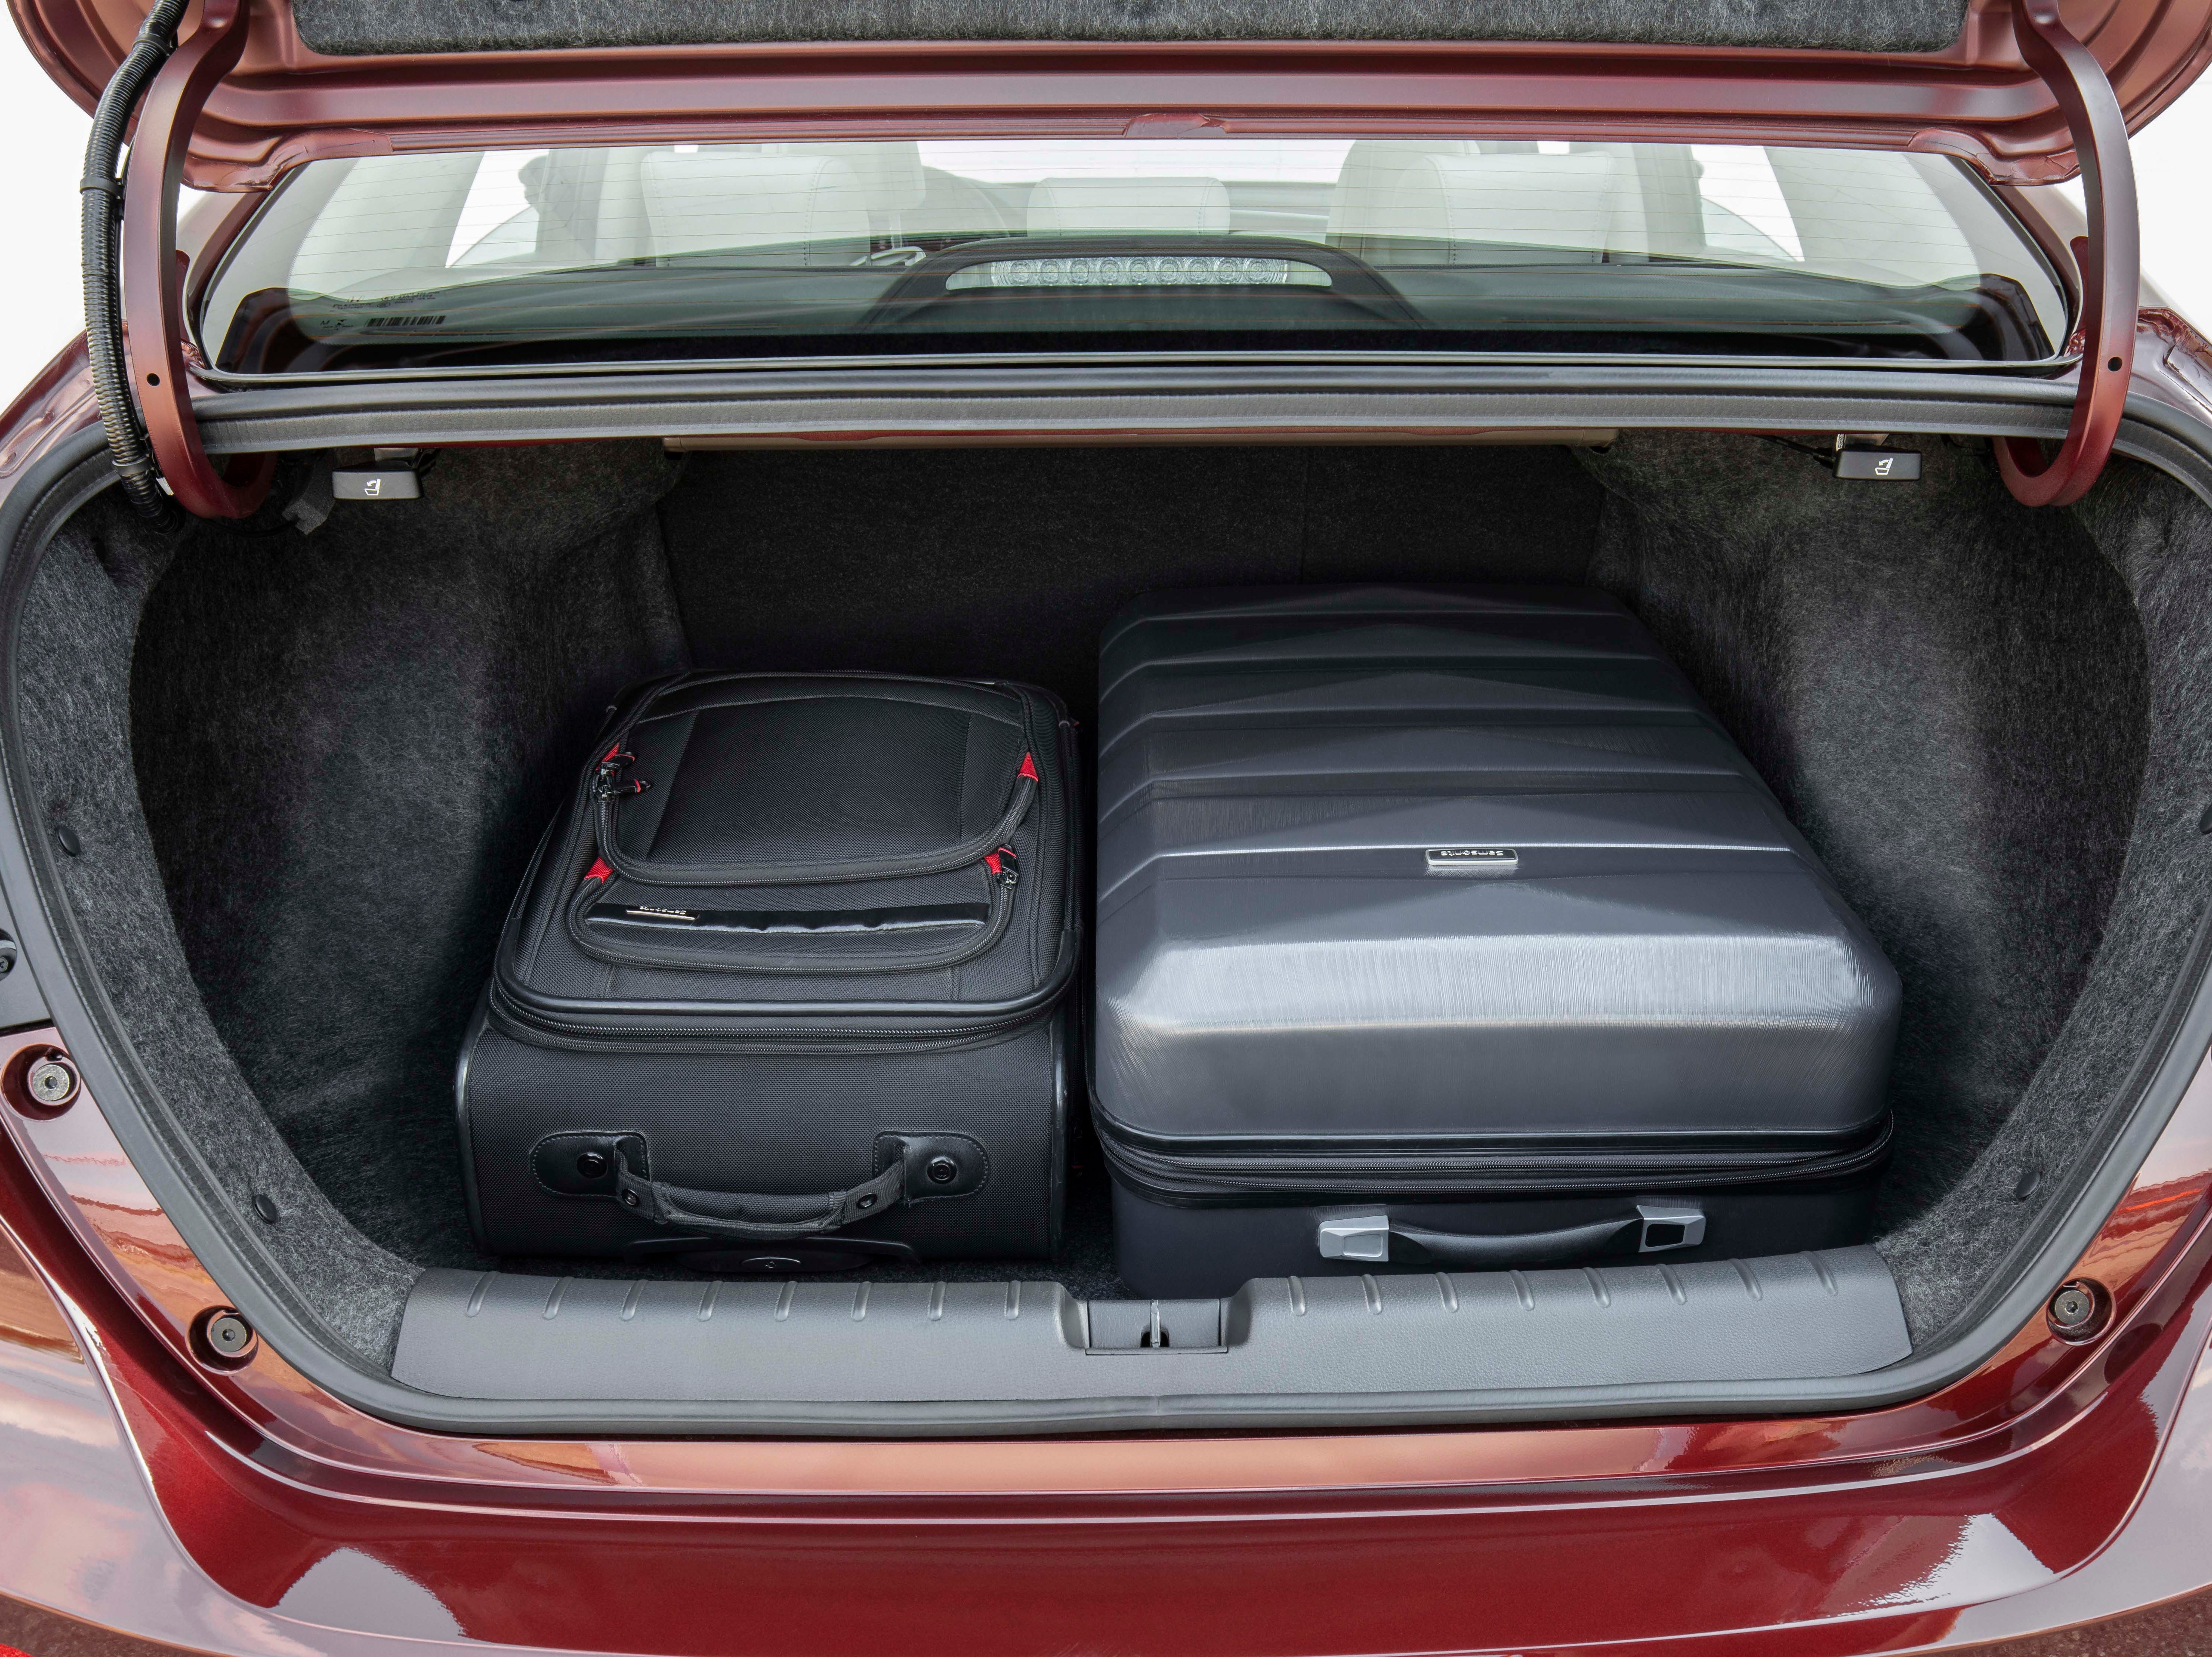 Roomy trunk. With clever battery packaging, the 2019 Honda Insight offers plenty of luggage storage.